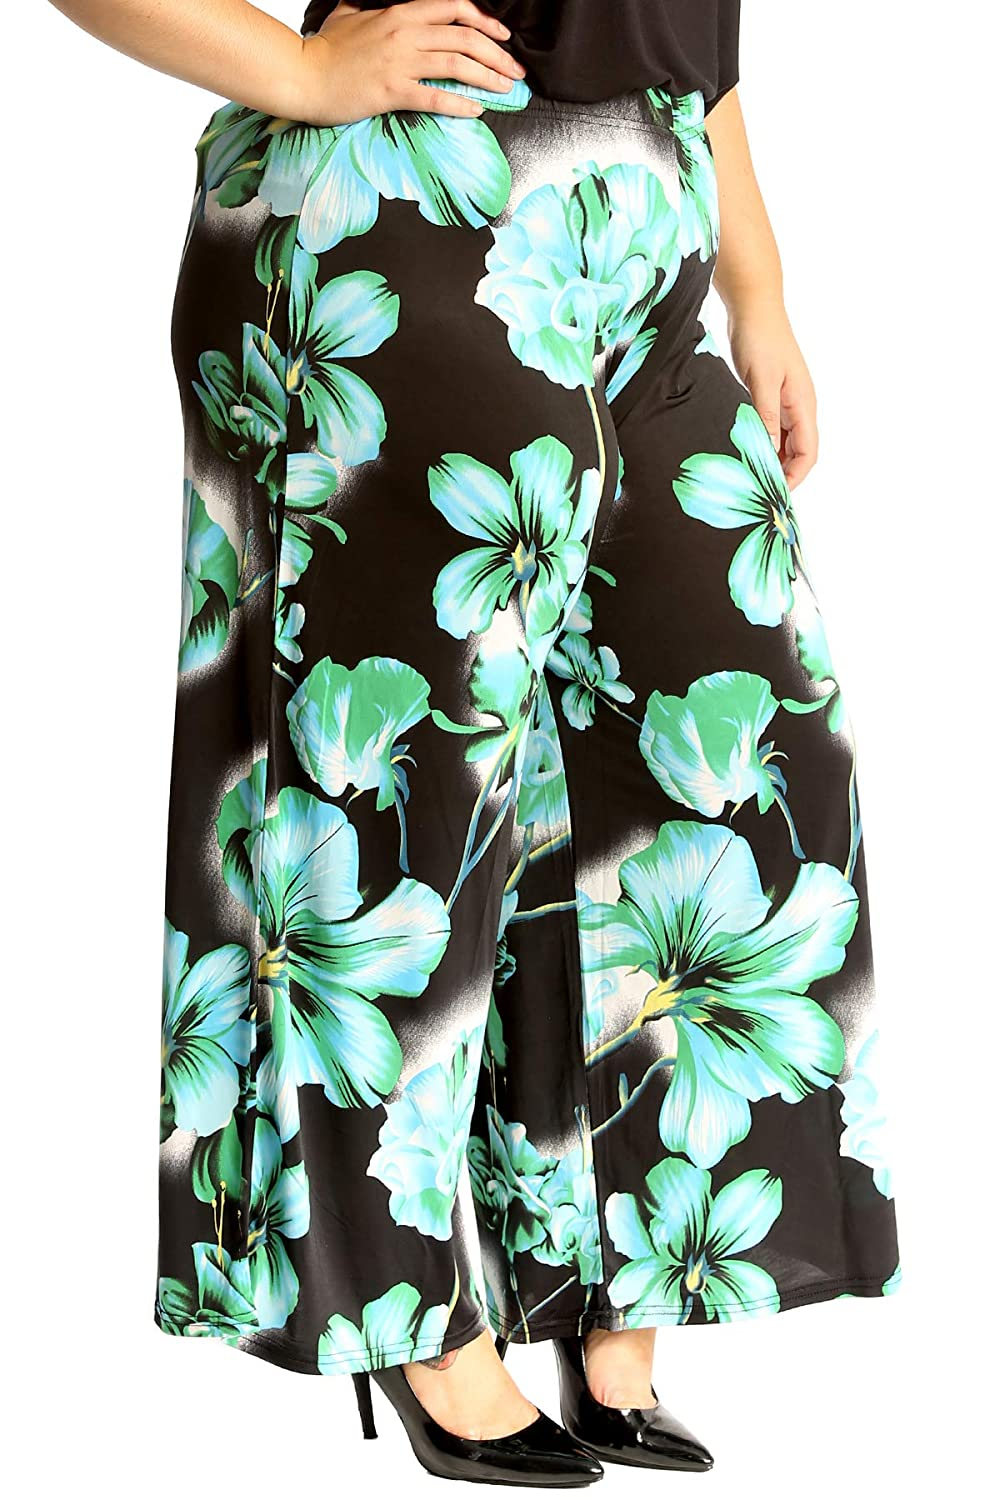 c8abf8fcdbb Nouvelle Collection Womens Plus Size Trousers Floral Print Palazzo Pants  Flared Bottoms  Amazon.co.uk  Clothing